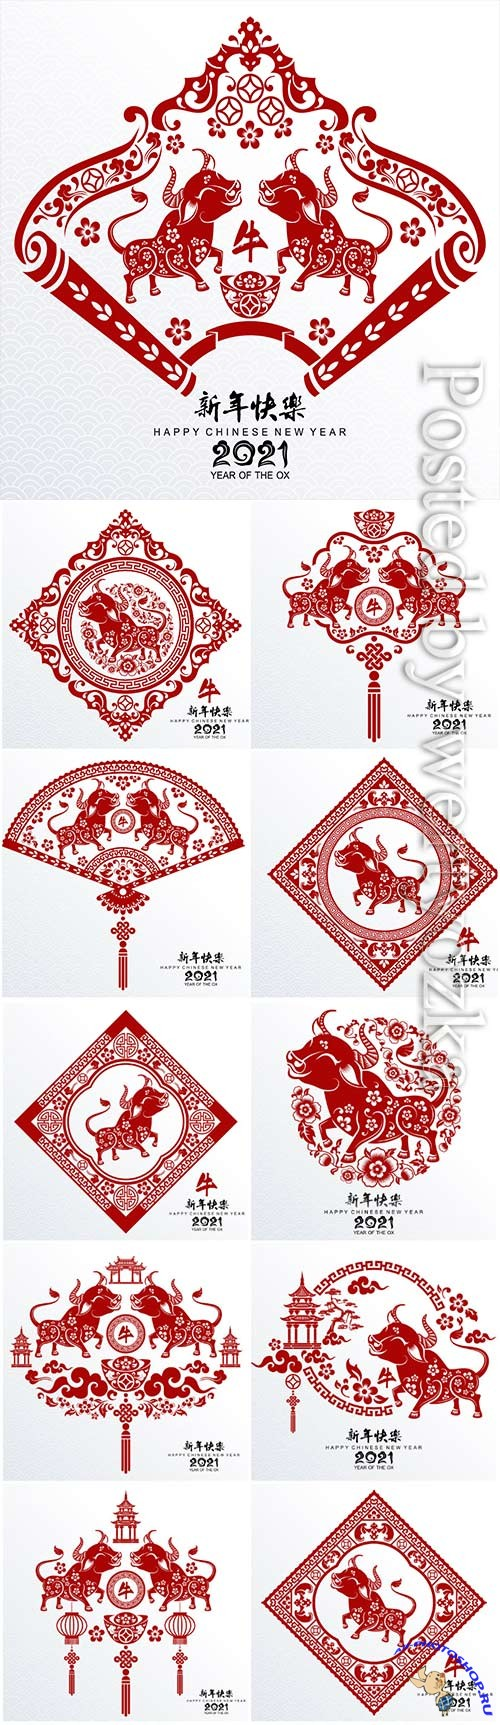 Chinese new year 2021, asian vector background